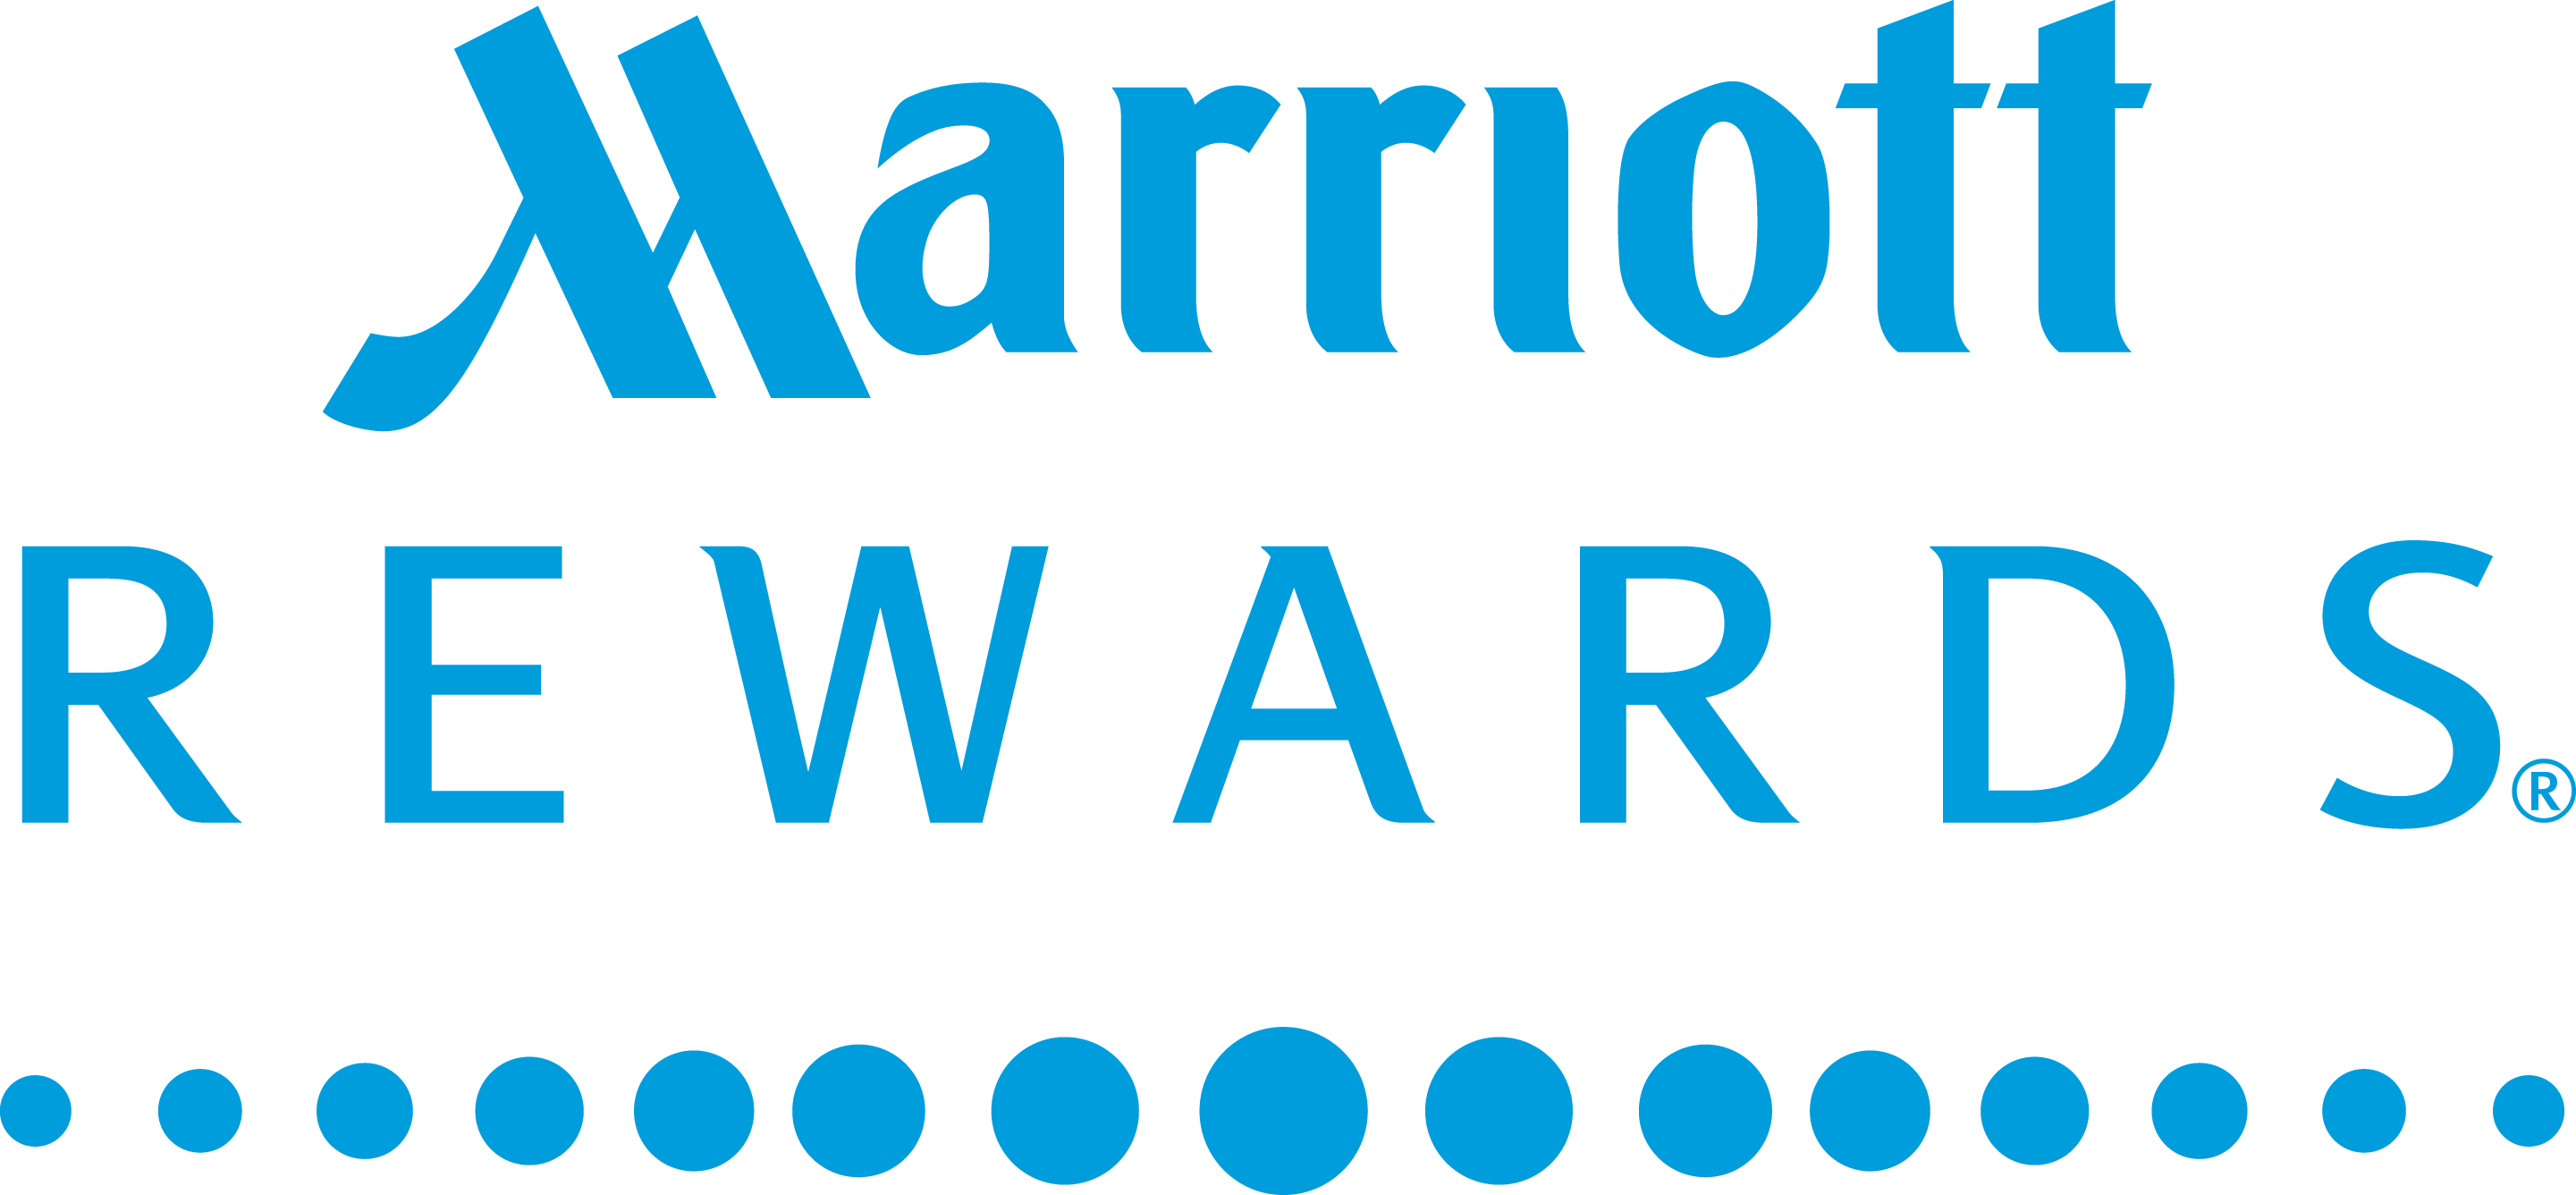 Everything About The Marriott Rewards Program